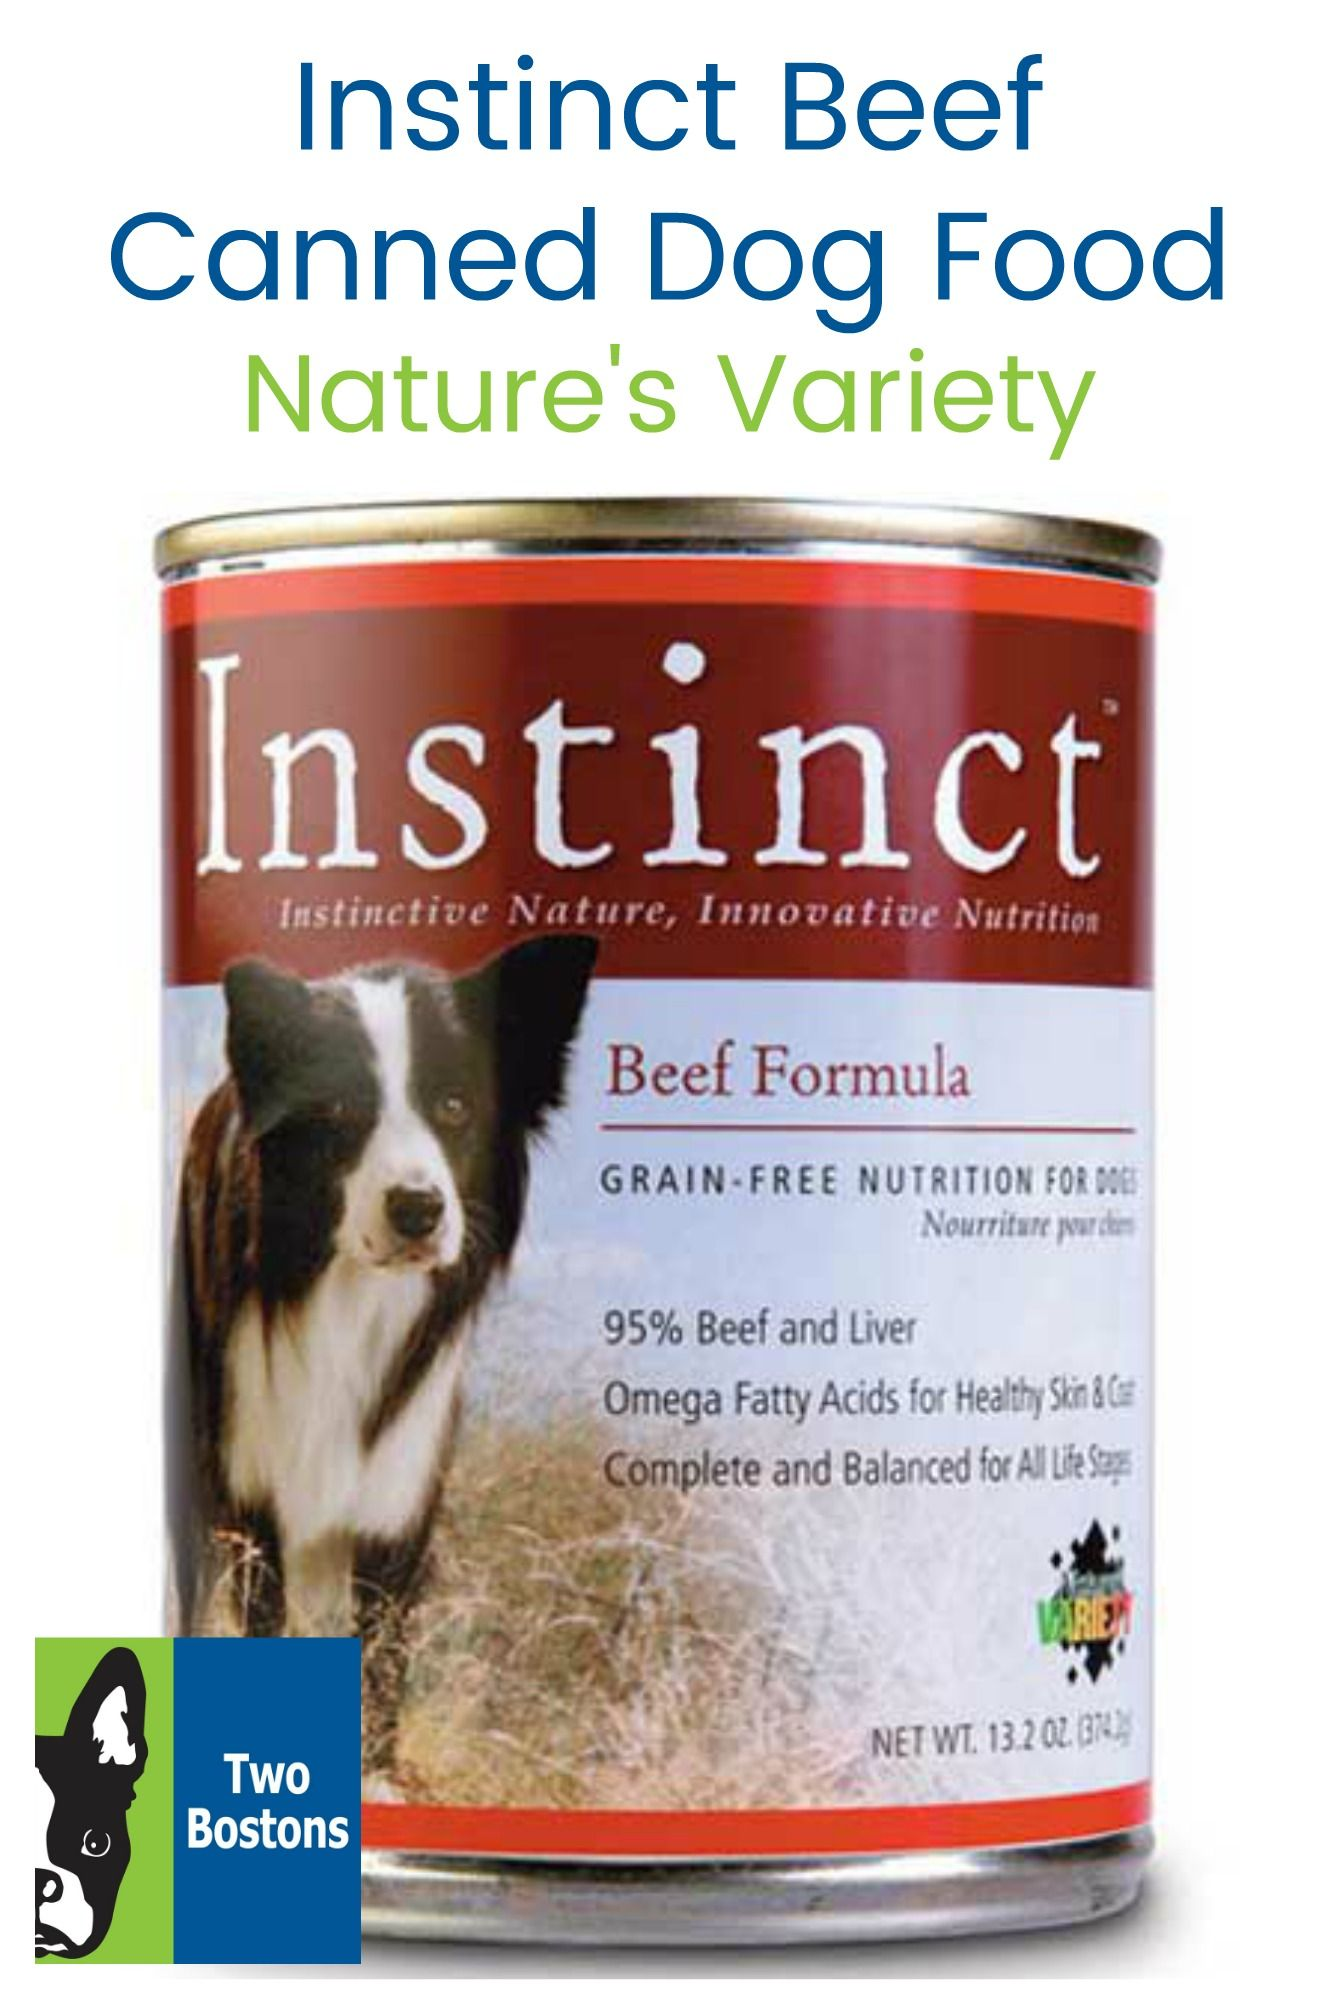 Instinct beef canned dog food by natures variety dog